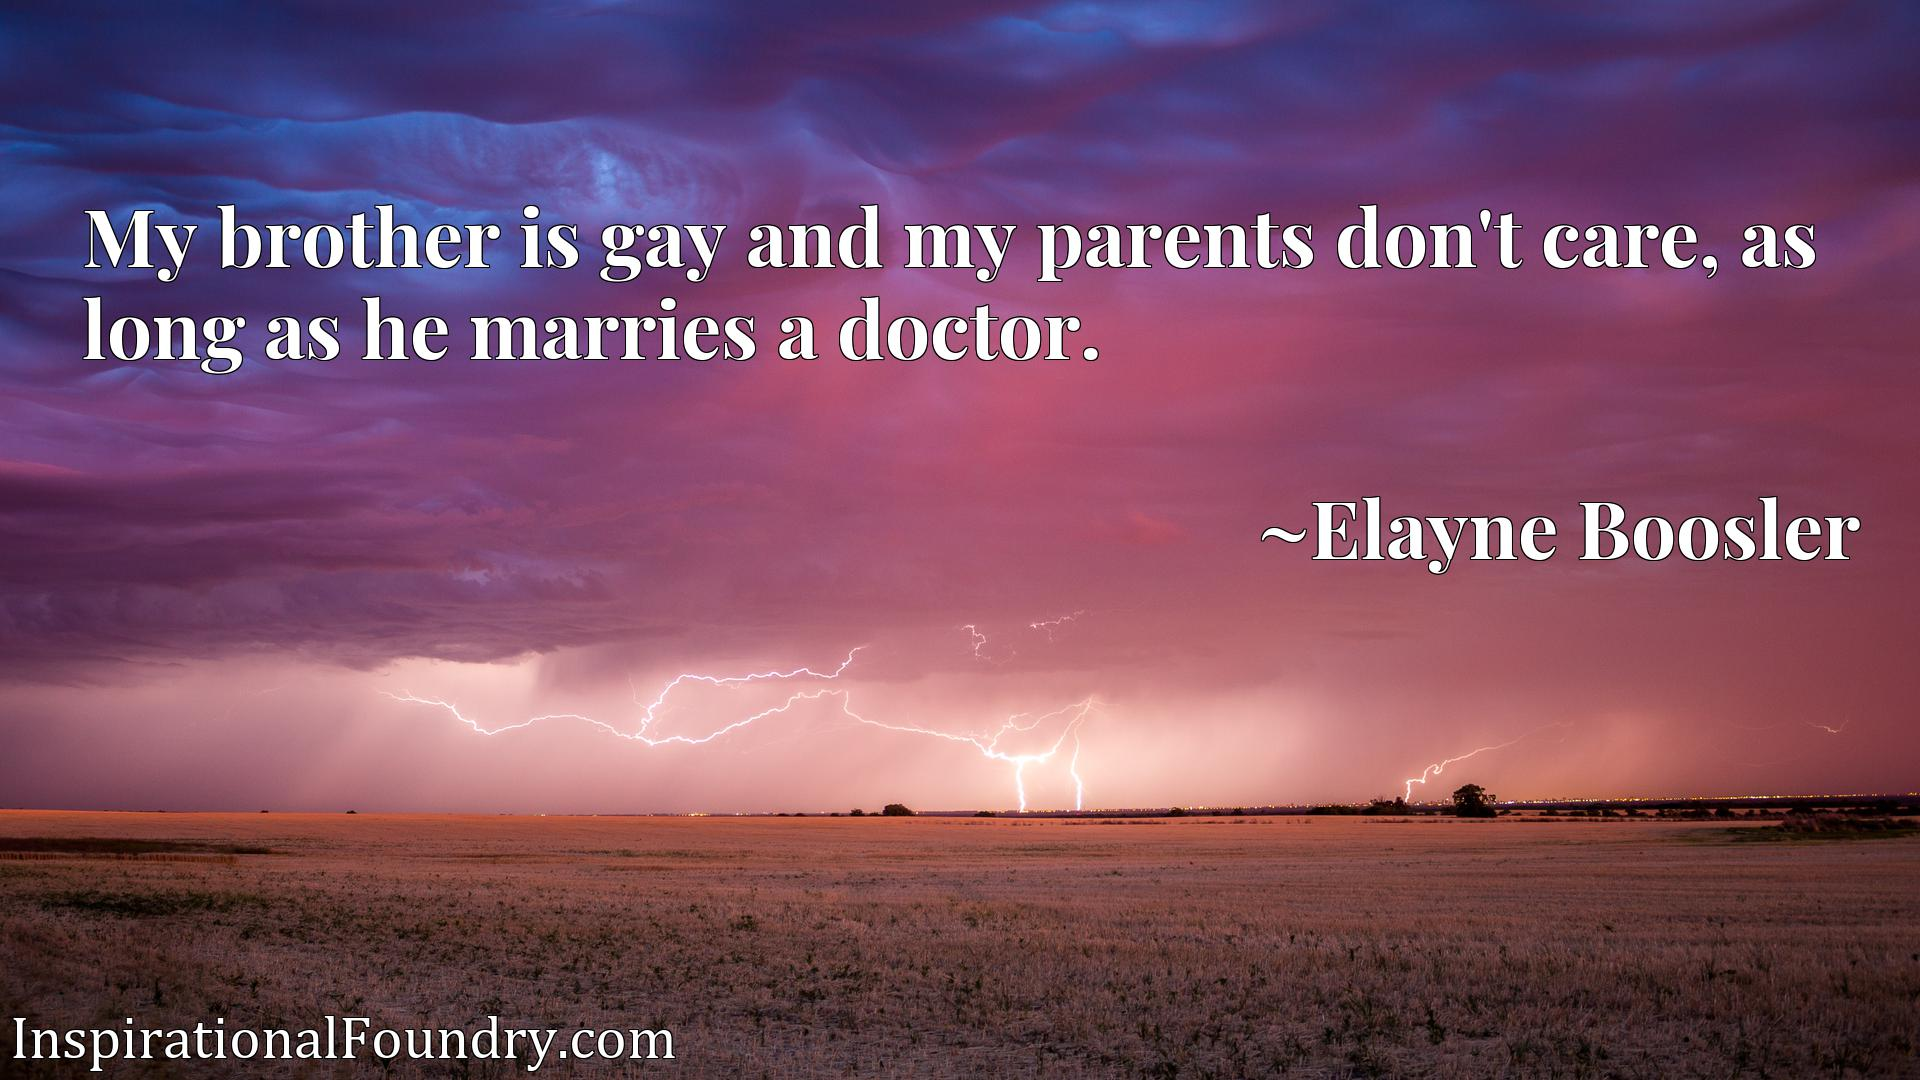 My brother is gay and my parents don't care, as long as he marries a doctor.